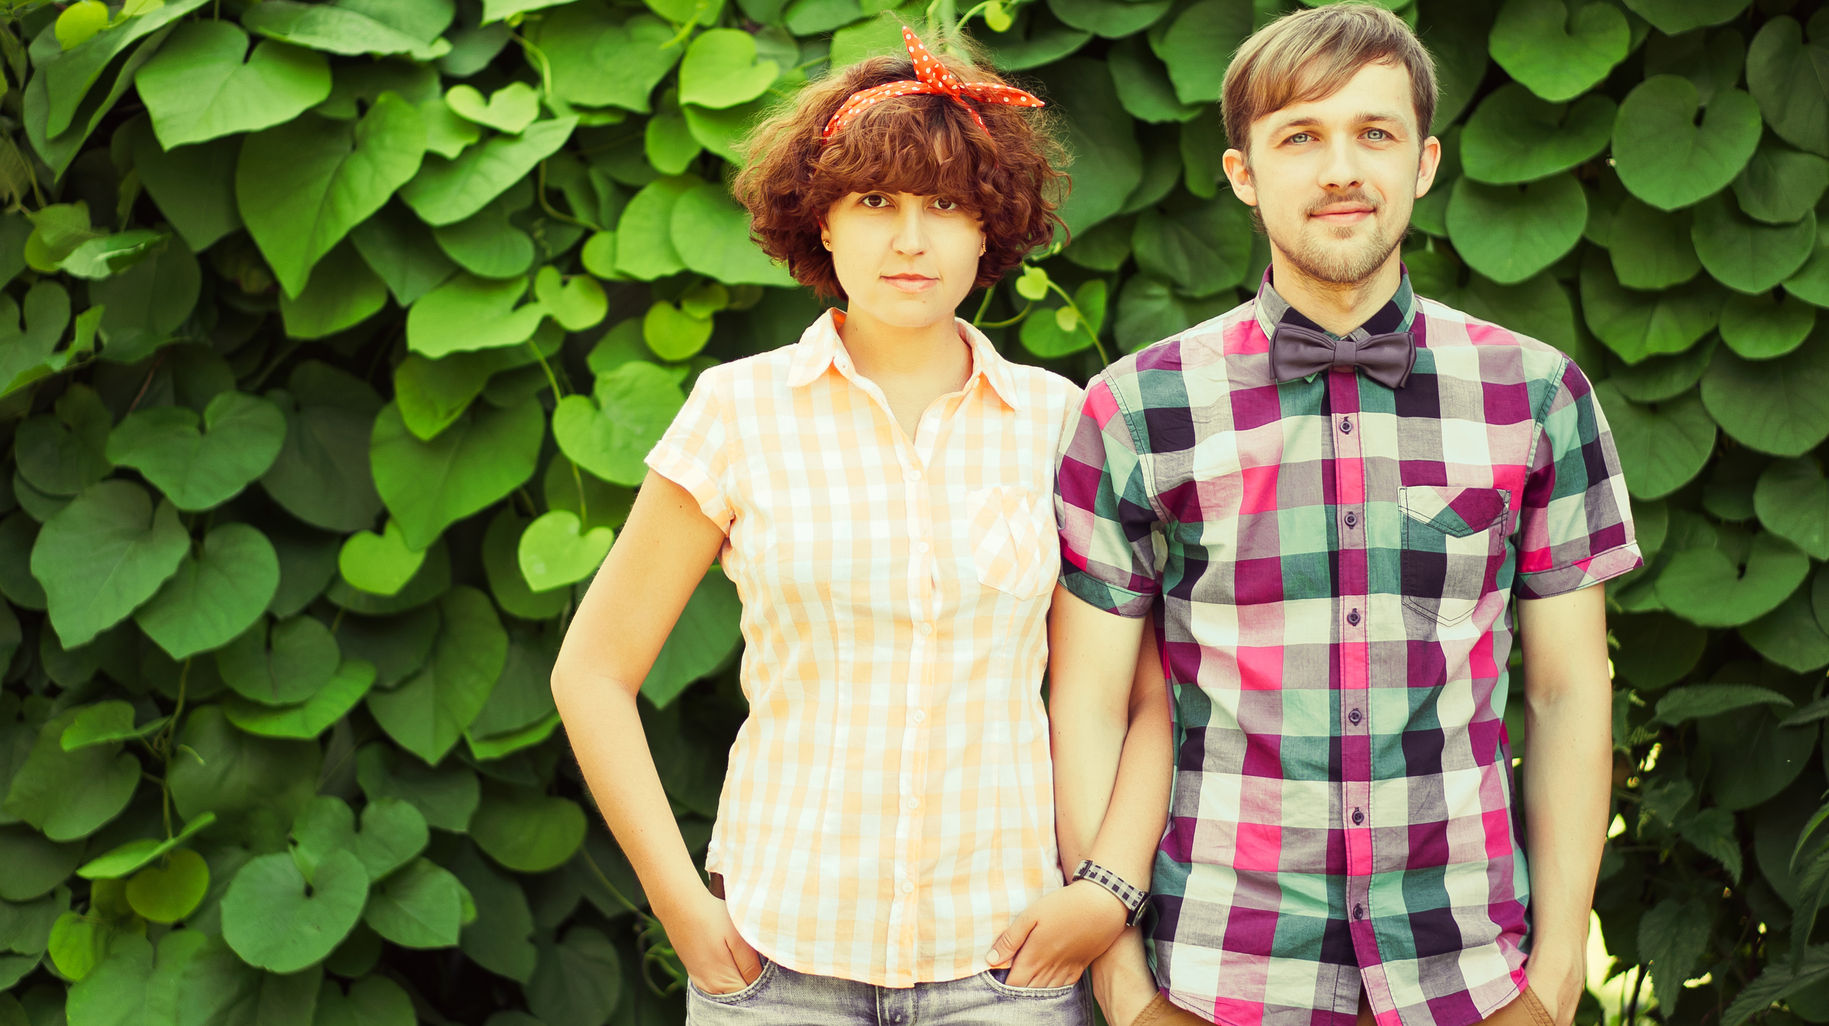 Standing young couple in front of a wall of leaves, looking intently at the camera